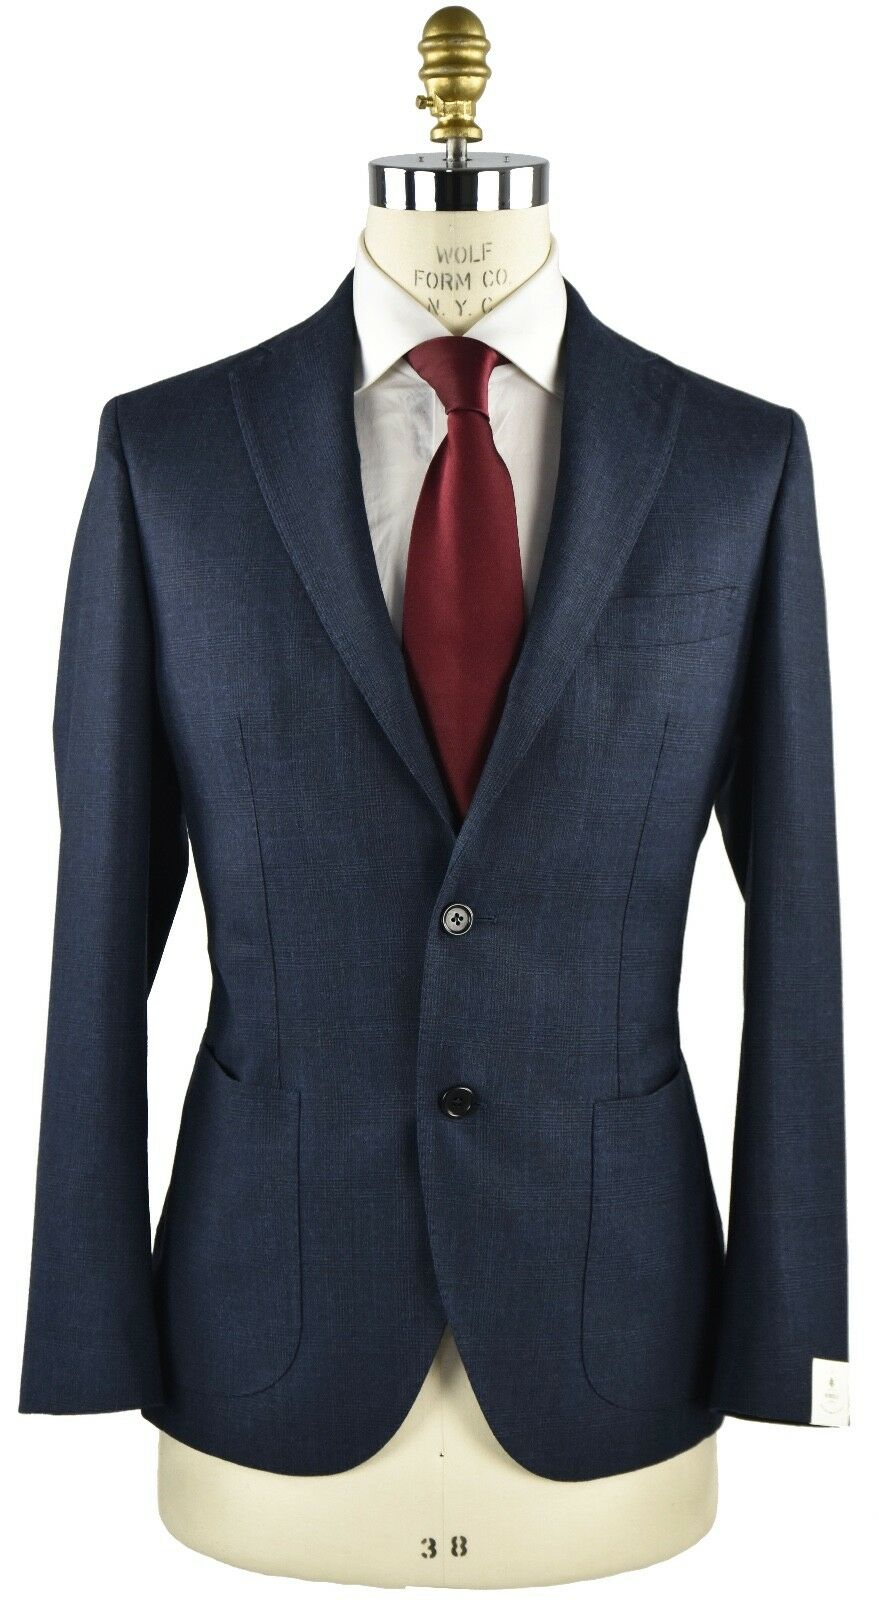 NEW 2018 LUIGI BORRELLI NAPOLI SUIT WOOL AND CASHMERE SZ 40 US 50 BL2